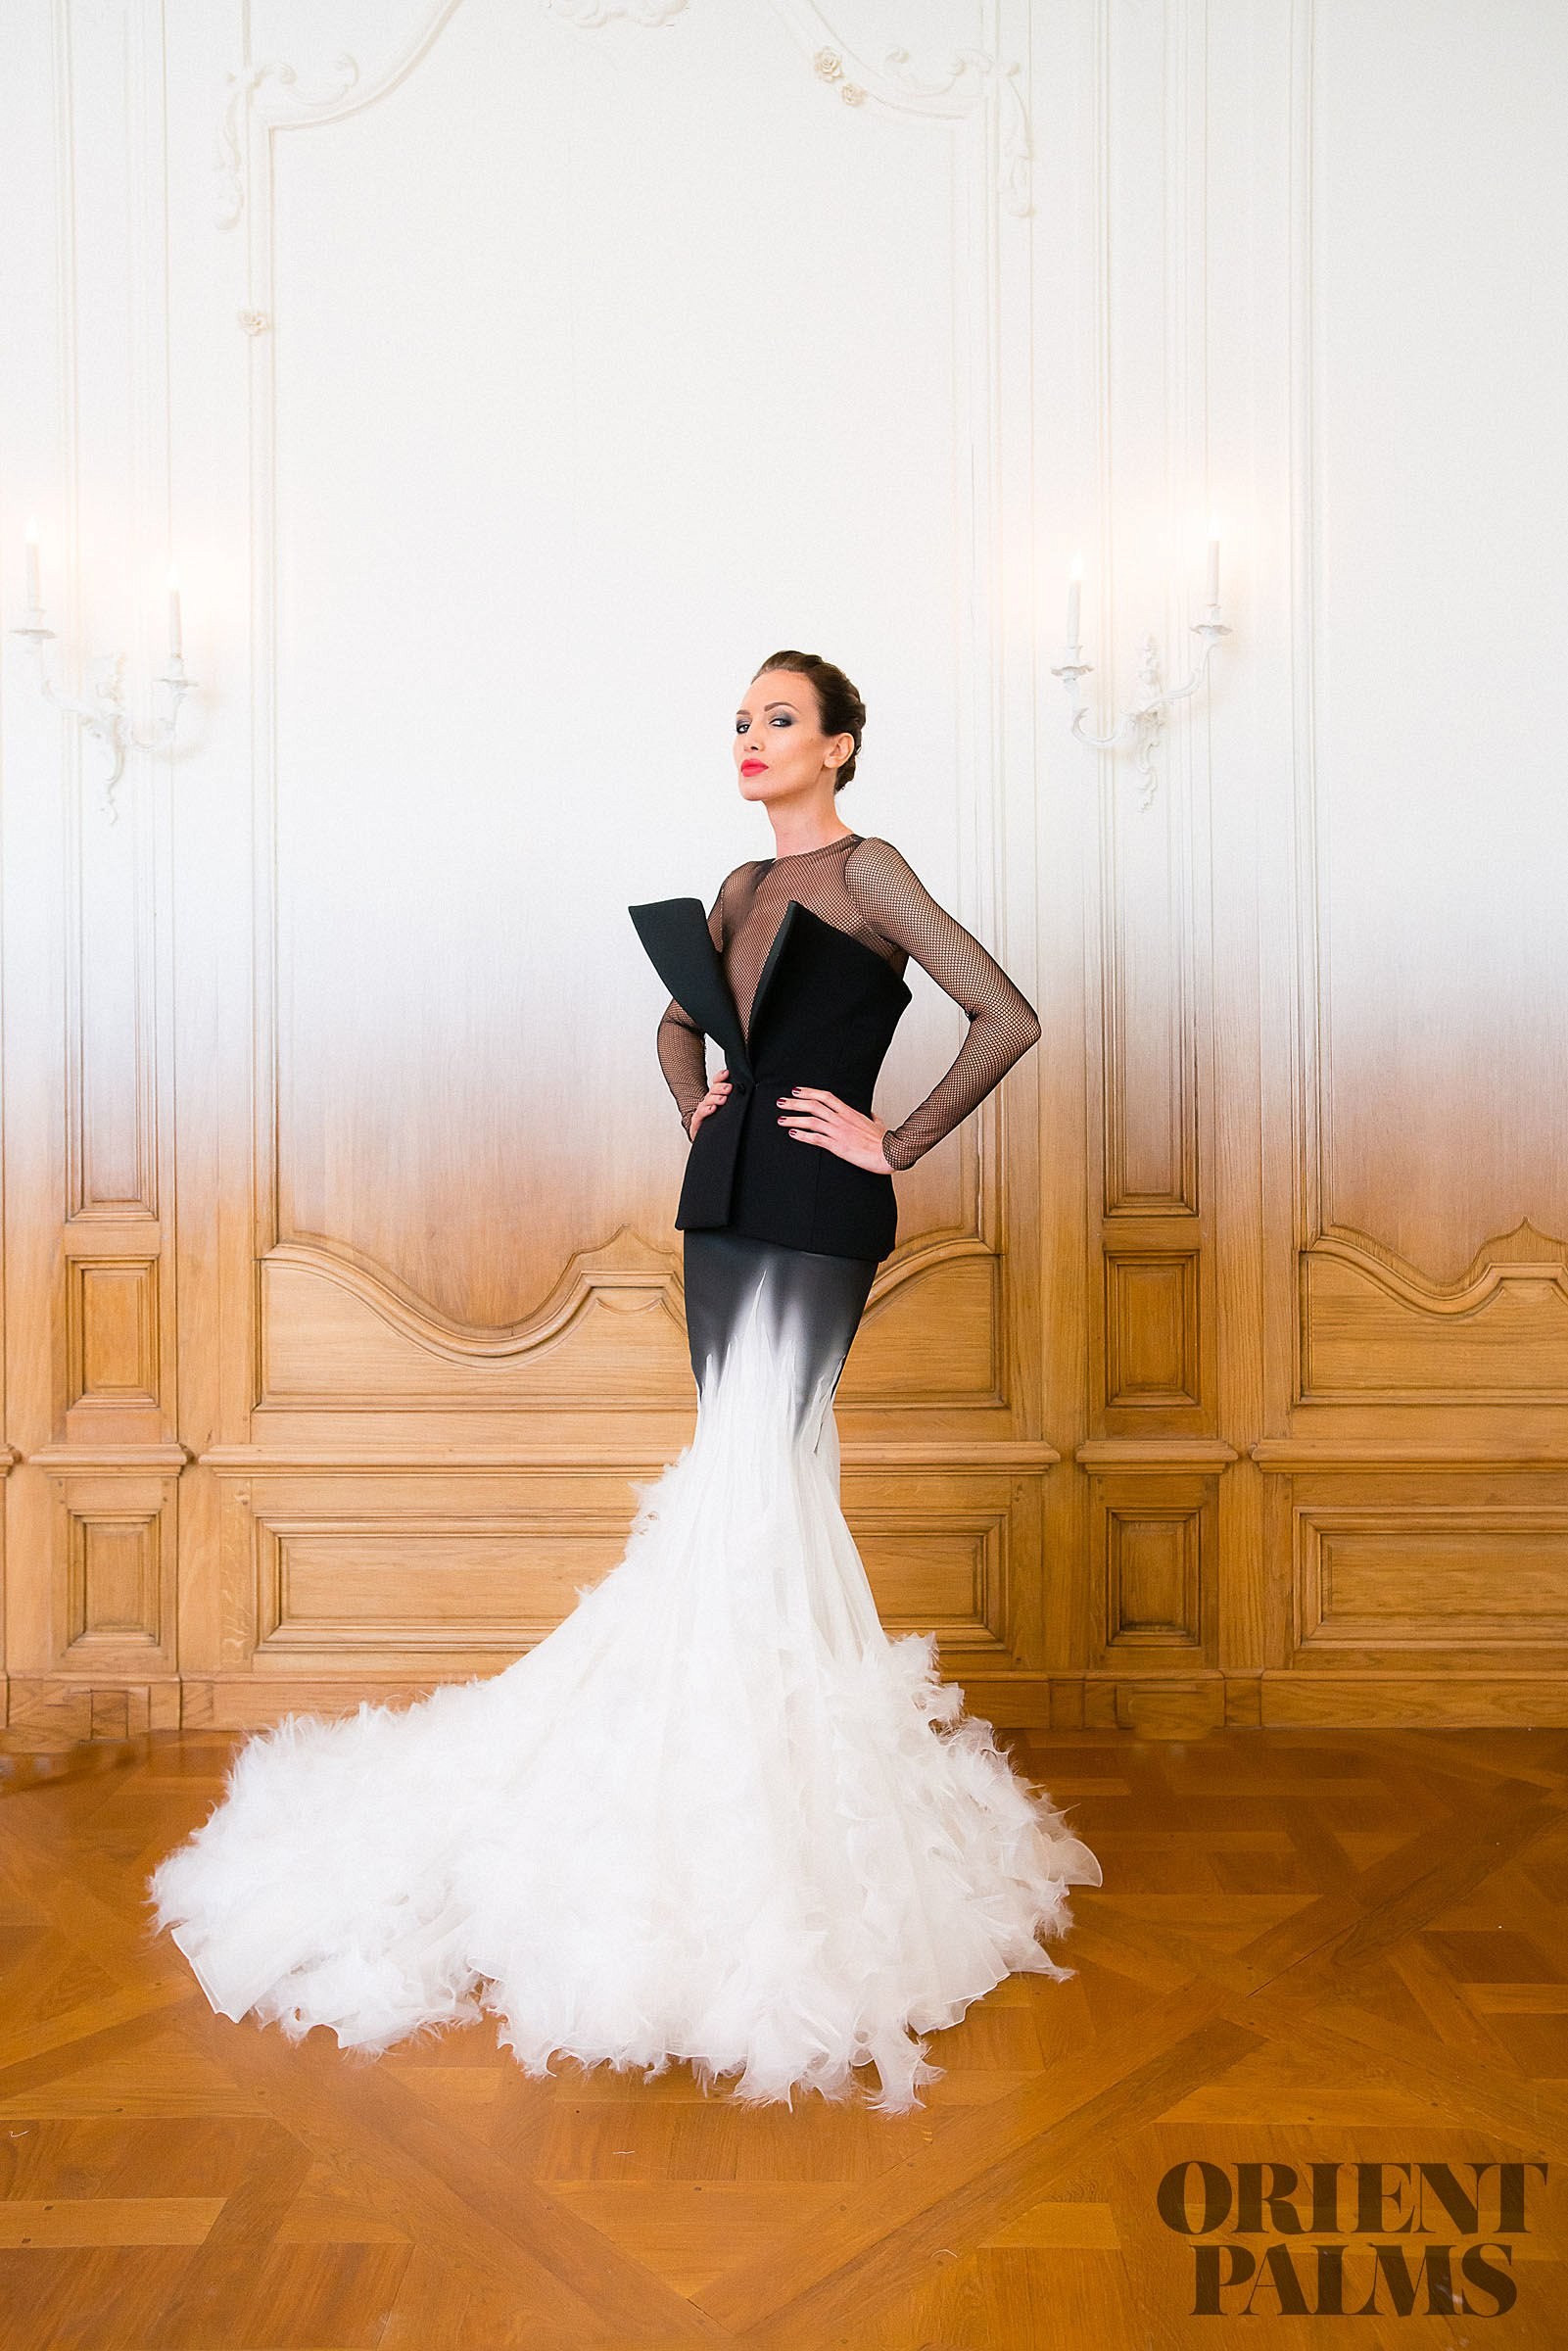 St phane rolland fall winter 2014 2015 couture for New haute couture designers